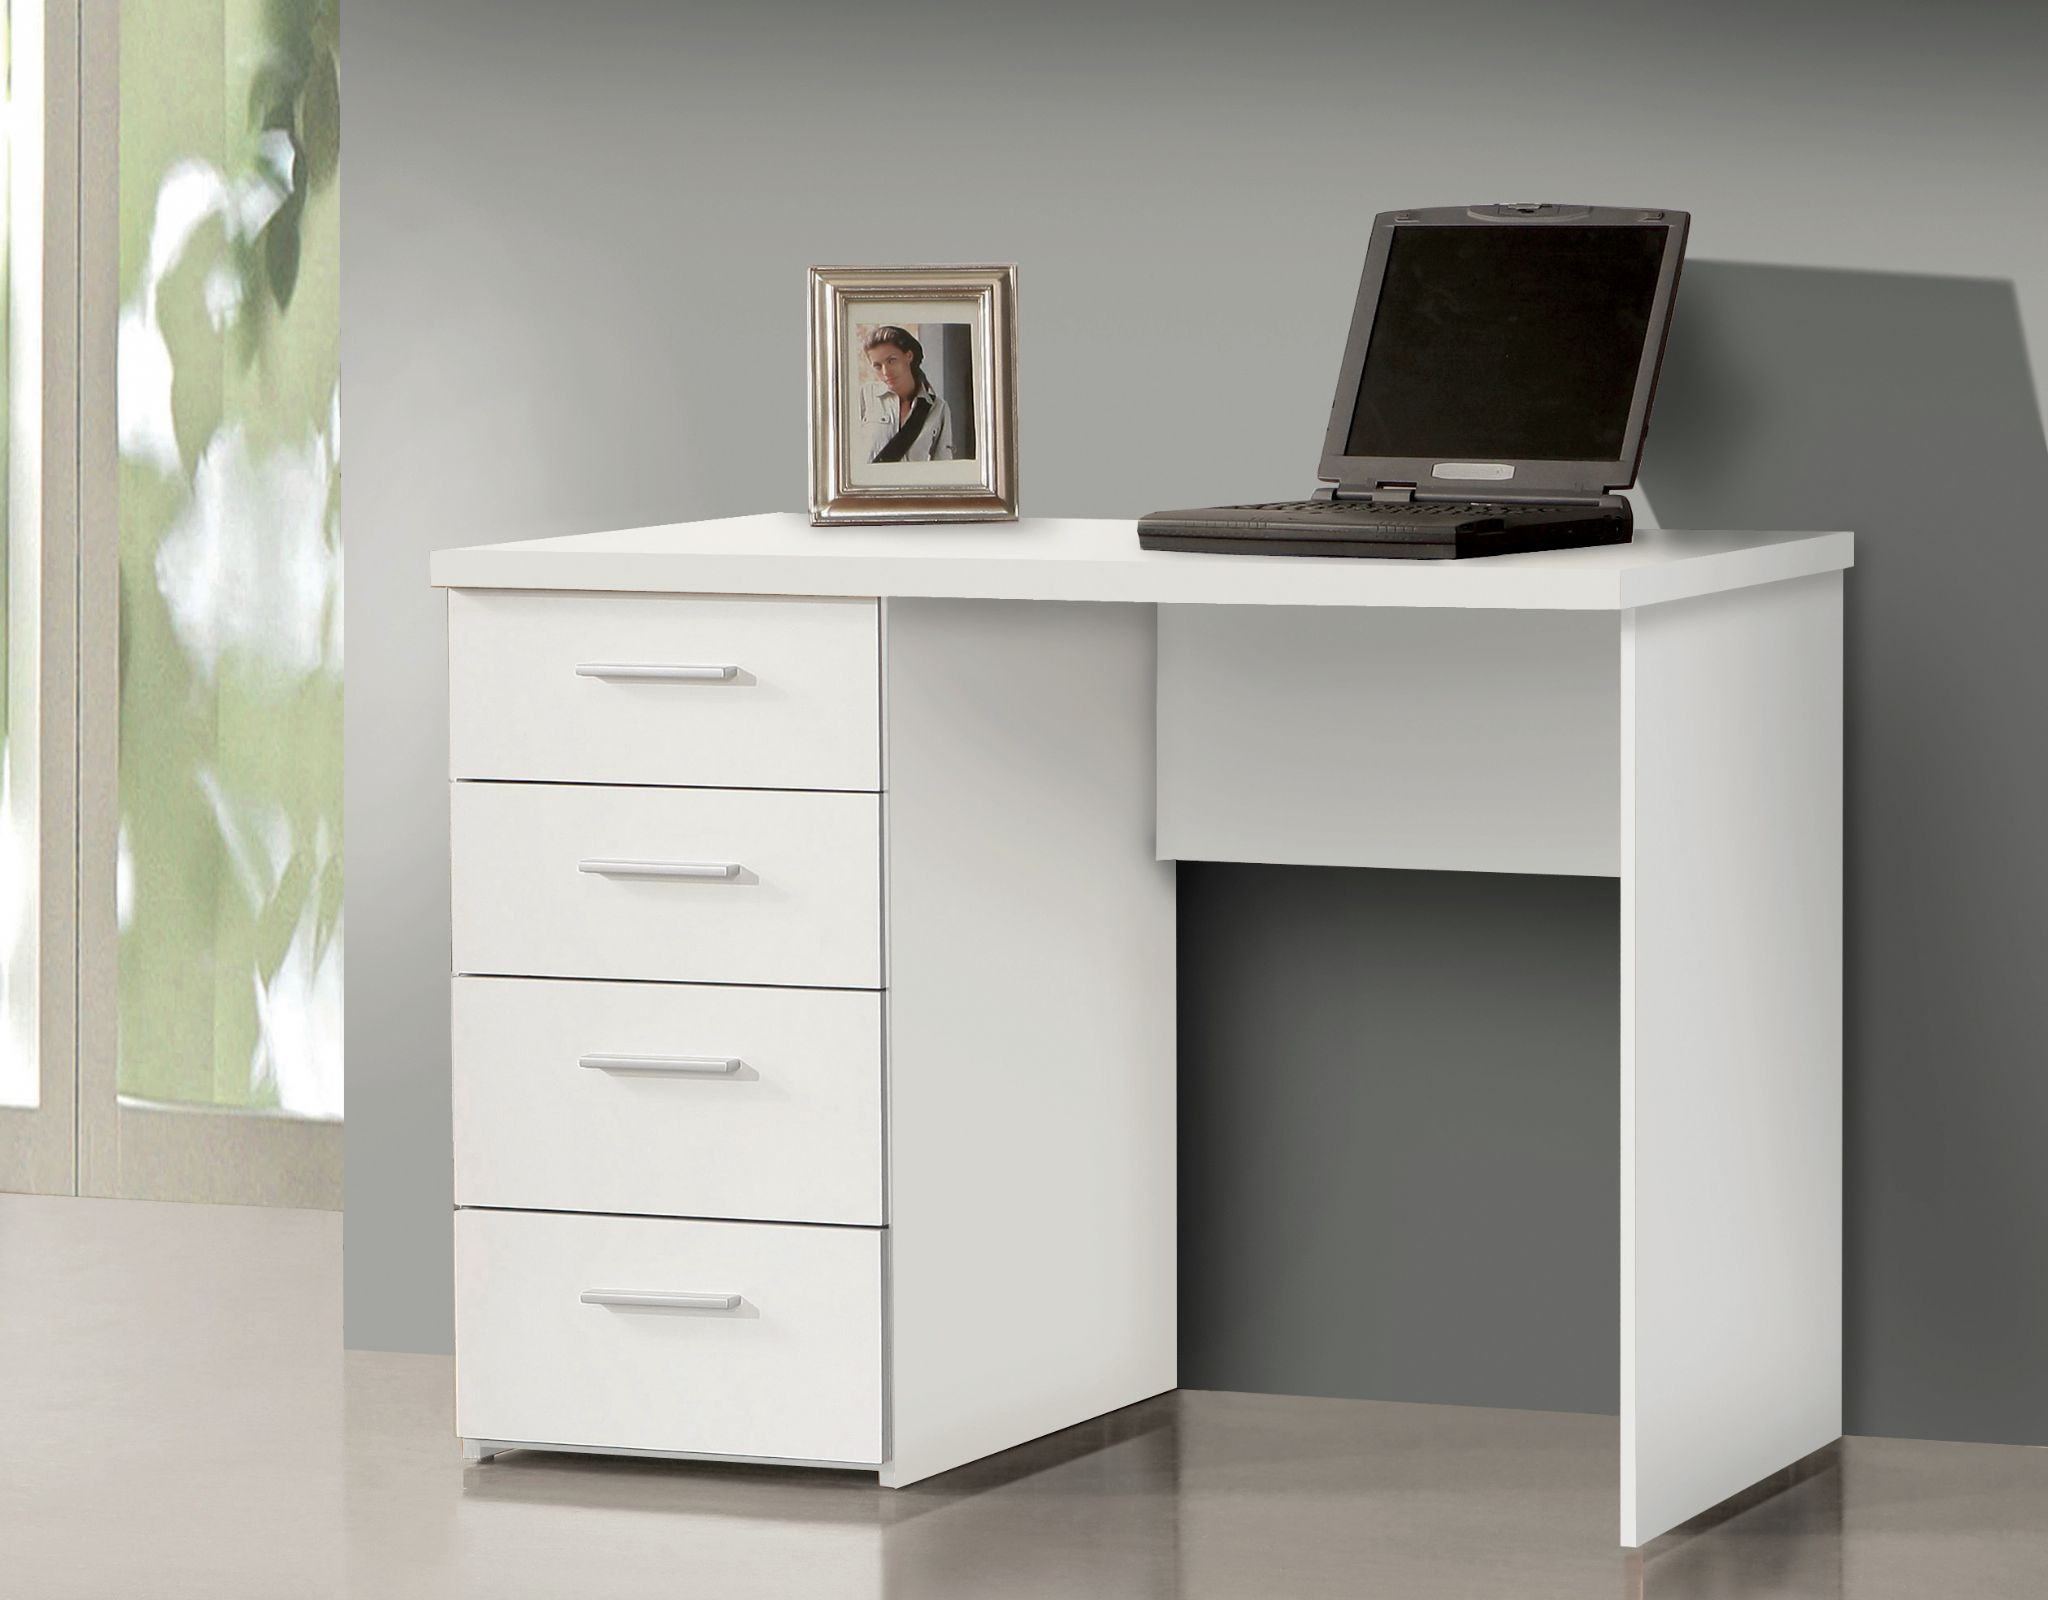 Desks With Drawers Pulton Simple Small White Desk With Drawers By Furniturefactor Wow